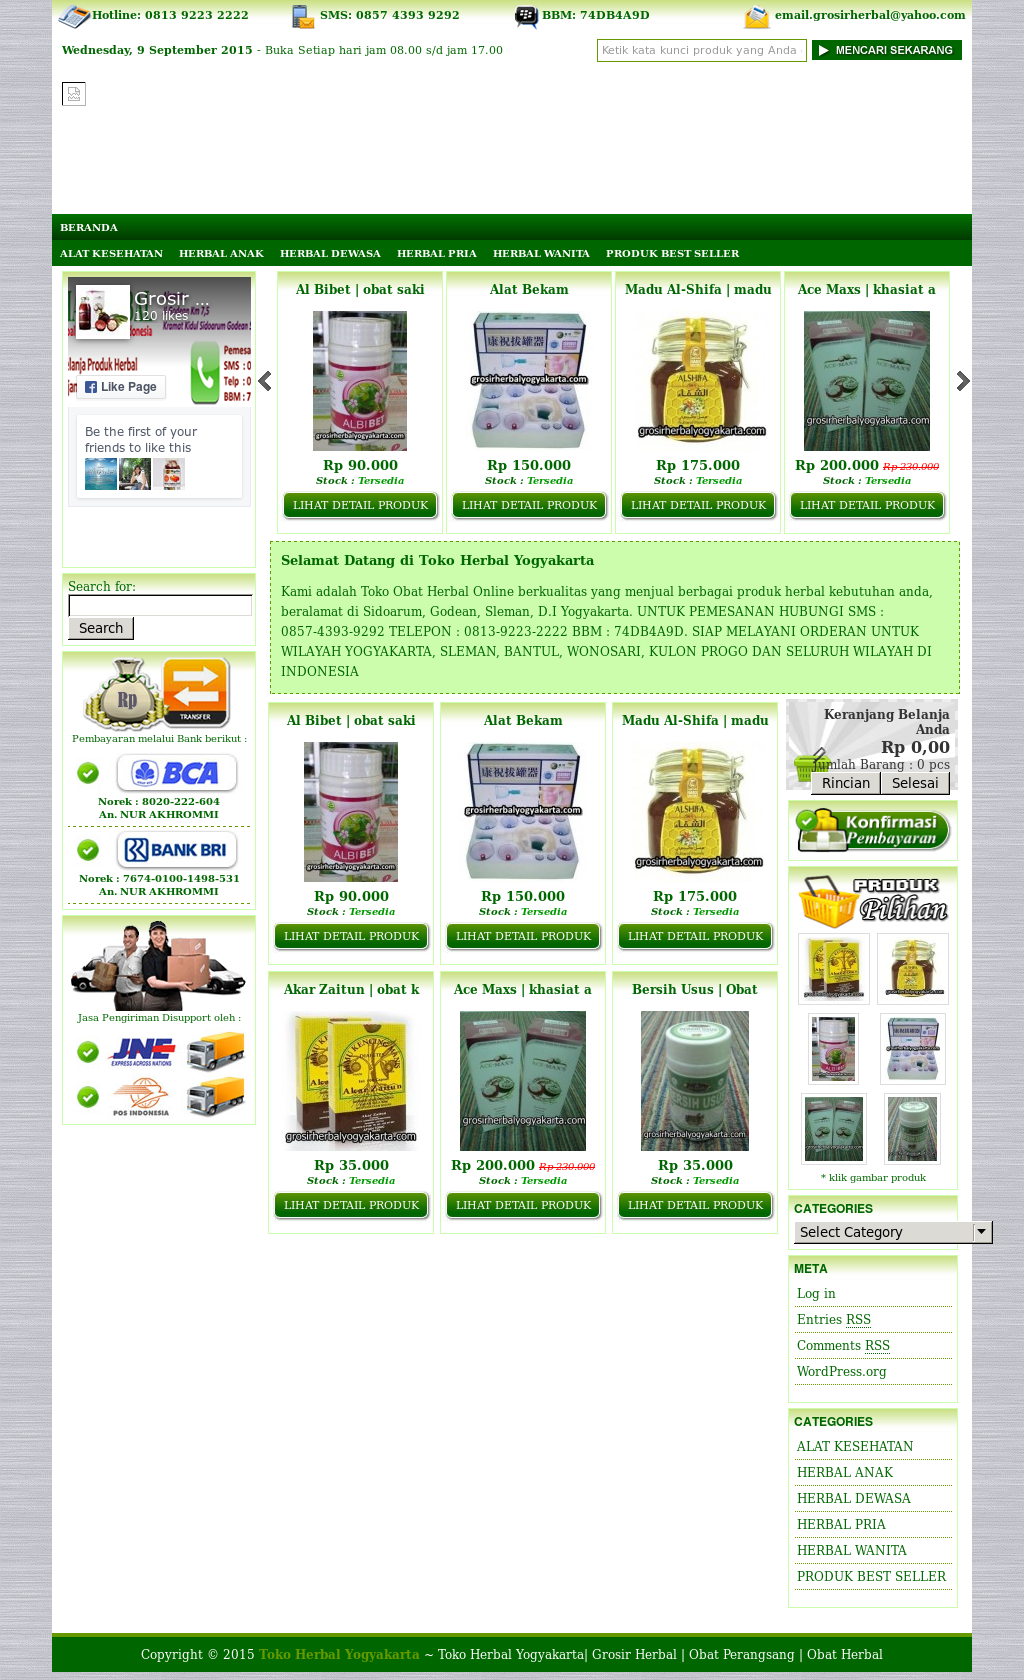 Grosir Herbal Jogja Competitors Revenue And Employees Owler Akar Zaitun Website History